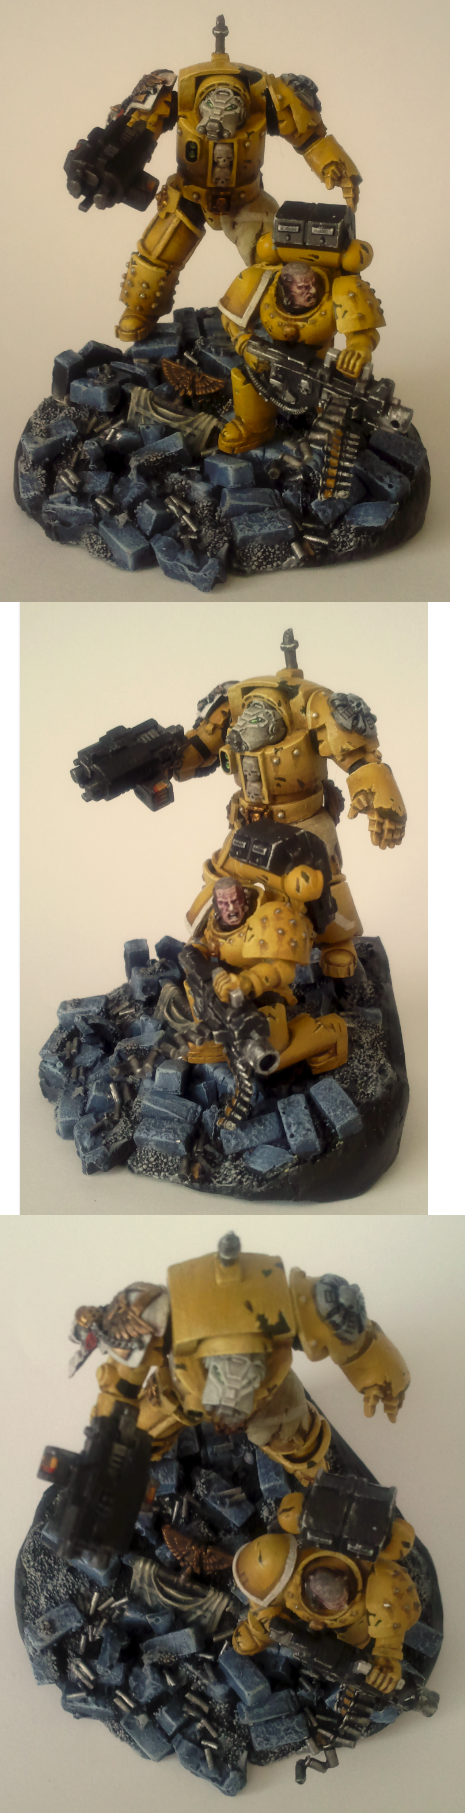 Brick, Conversion, Crux, Diorama, Heavy Bolter, Imperial Fists, Space Marines, Terminator Armor, Yellow